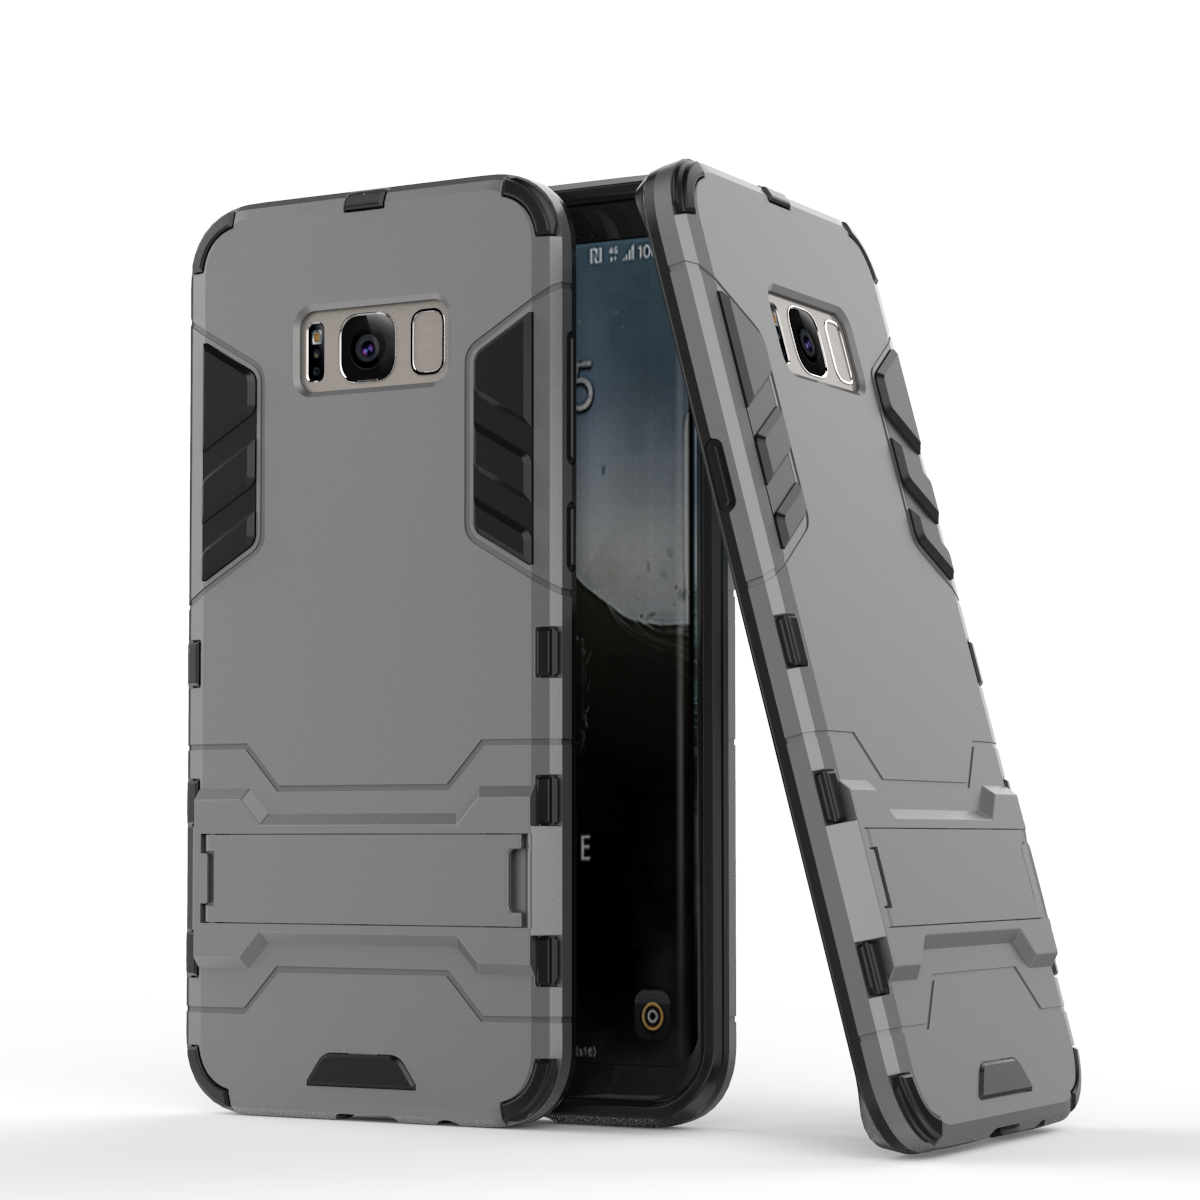 Rmor defender protective case cover with kickstand for samsung galaxy s8 gray p20170327162238859